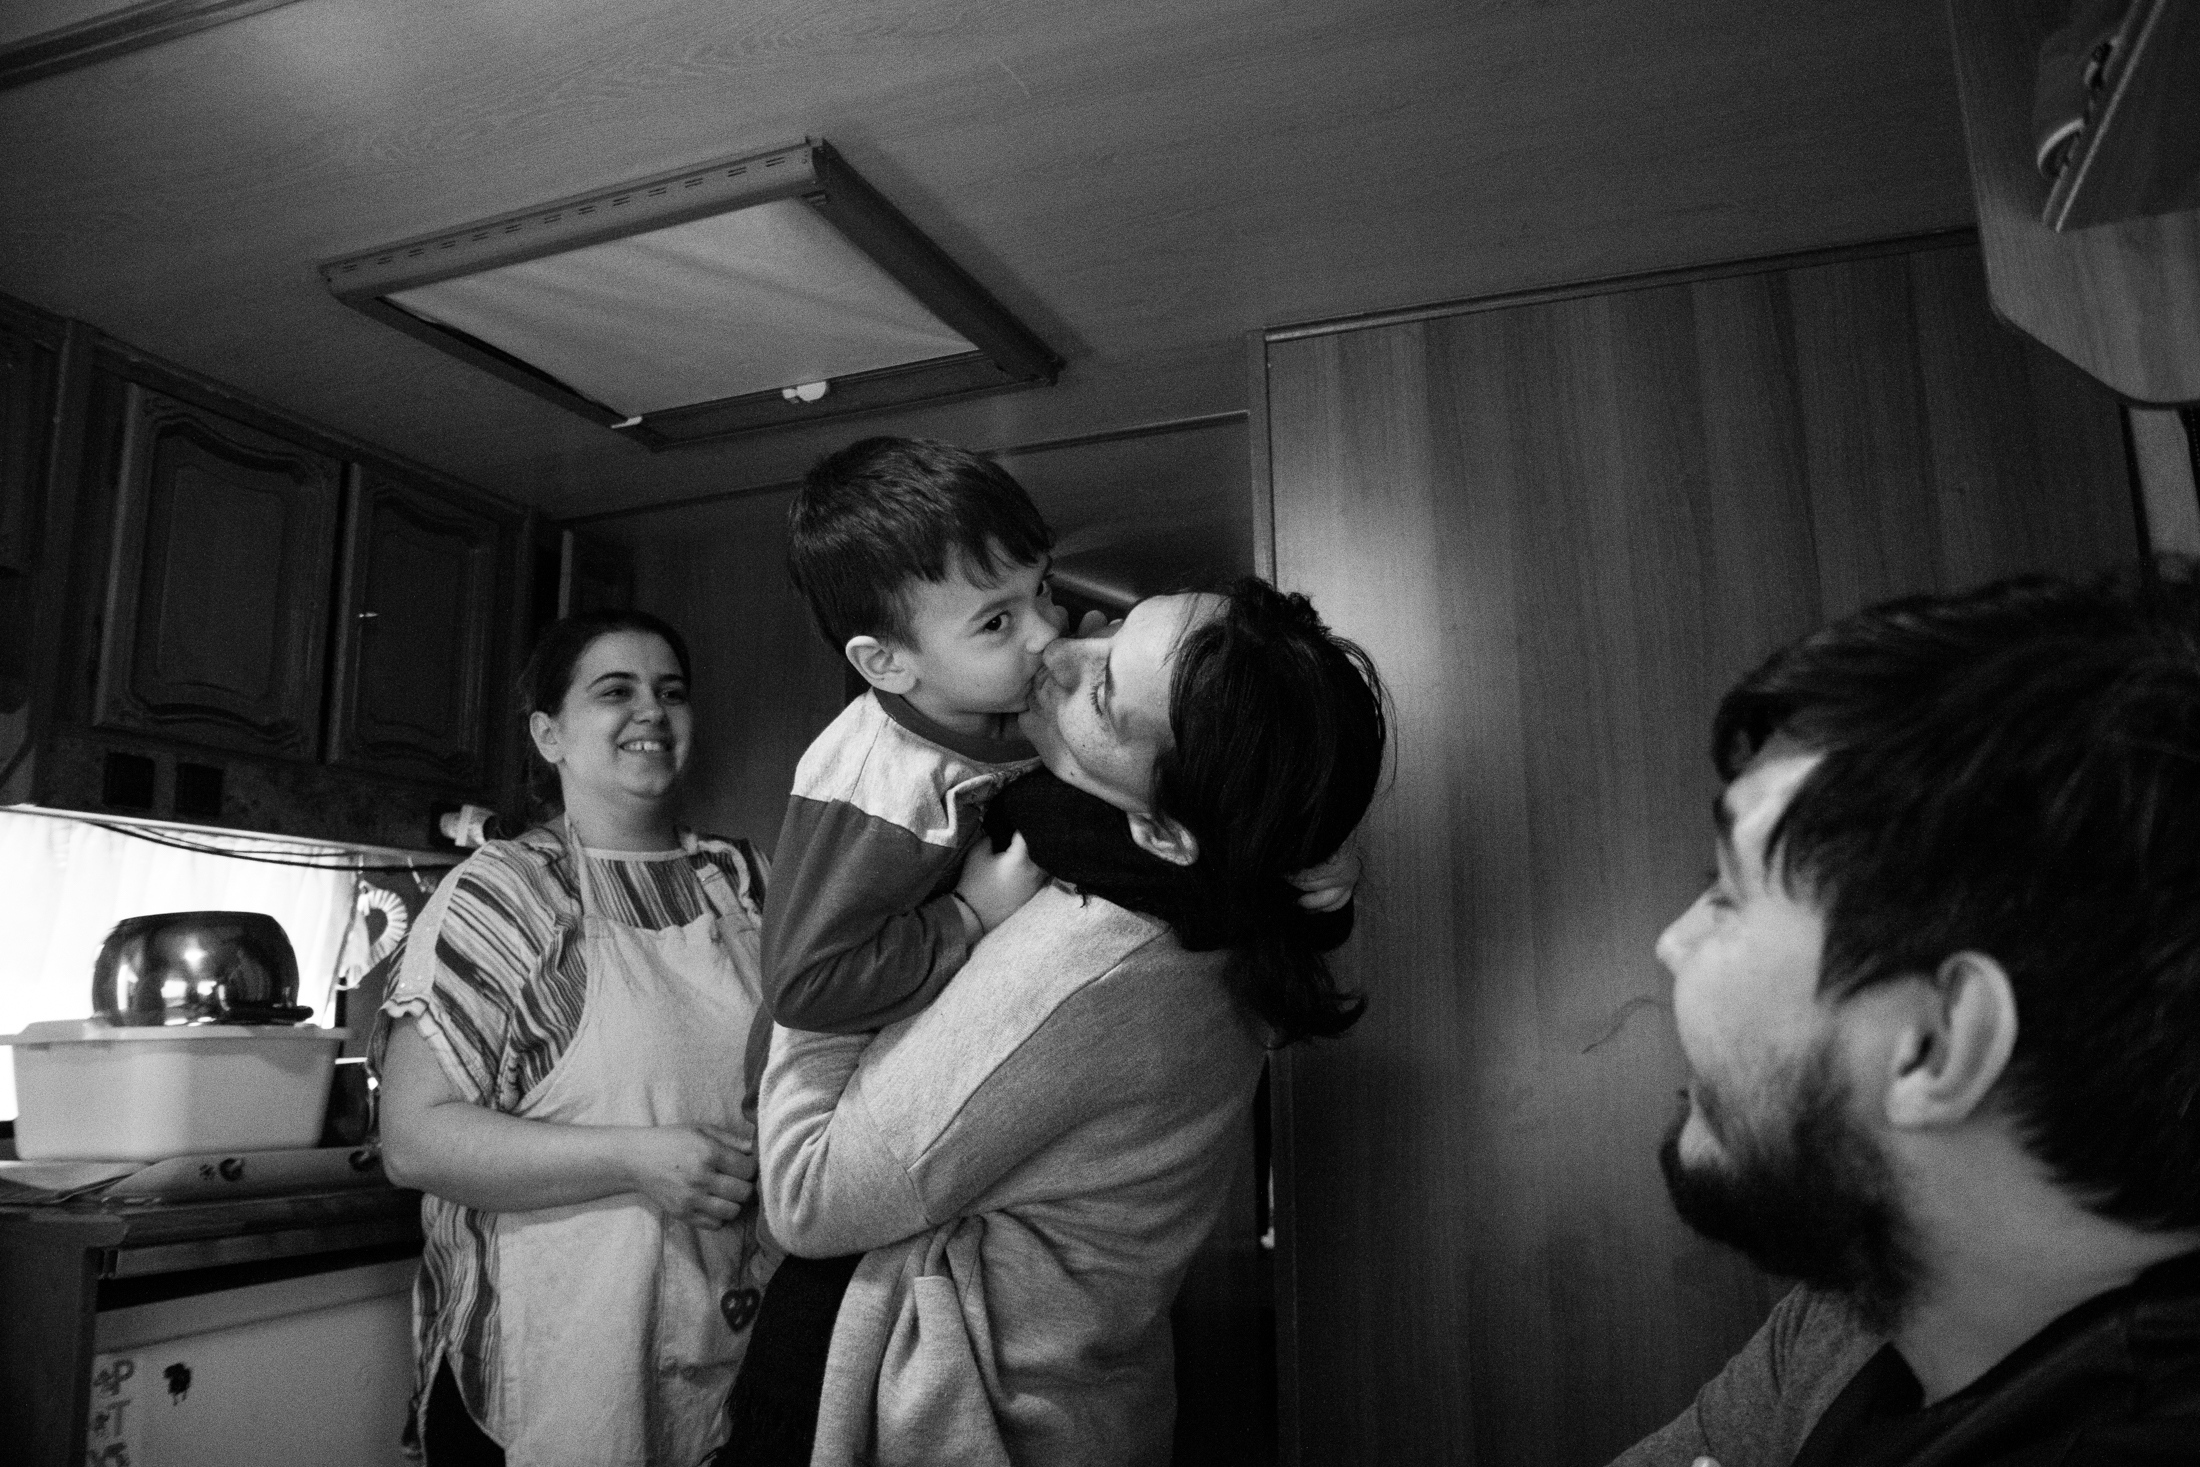 February 2017, nomad camp of Castelnuovo Rangone, Emilia-Romagna, Italy. Moment of joy and intimacy between Linda and the family of one of her daughters inside the mobile home.